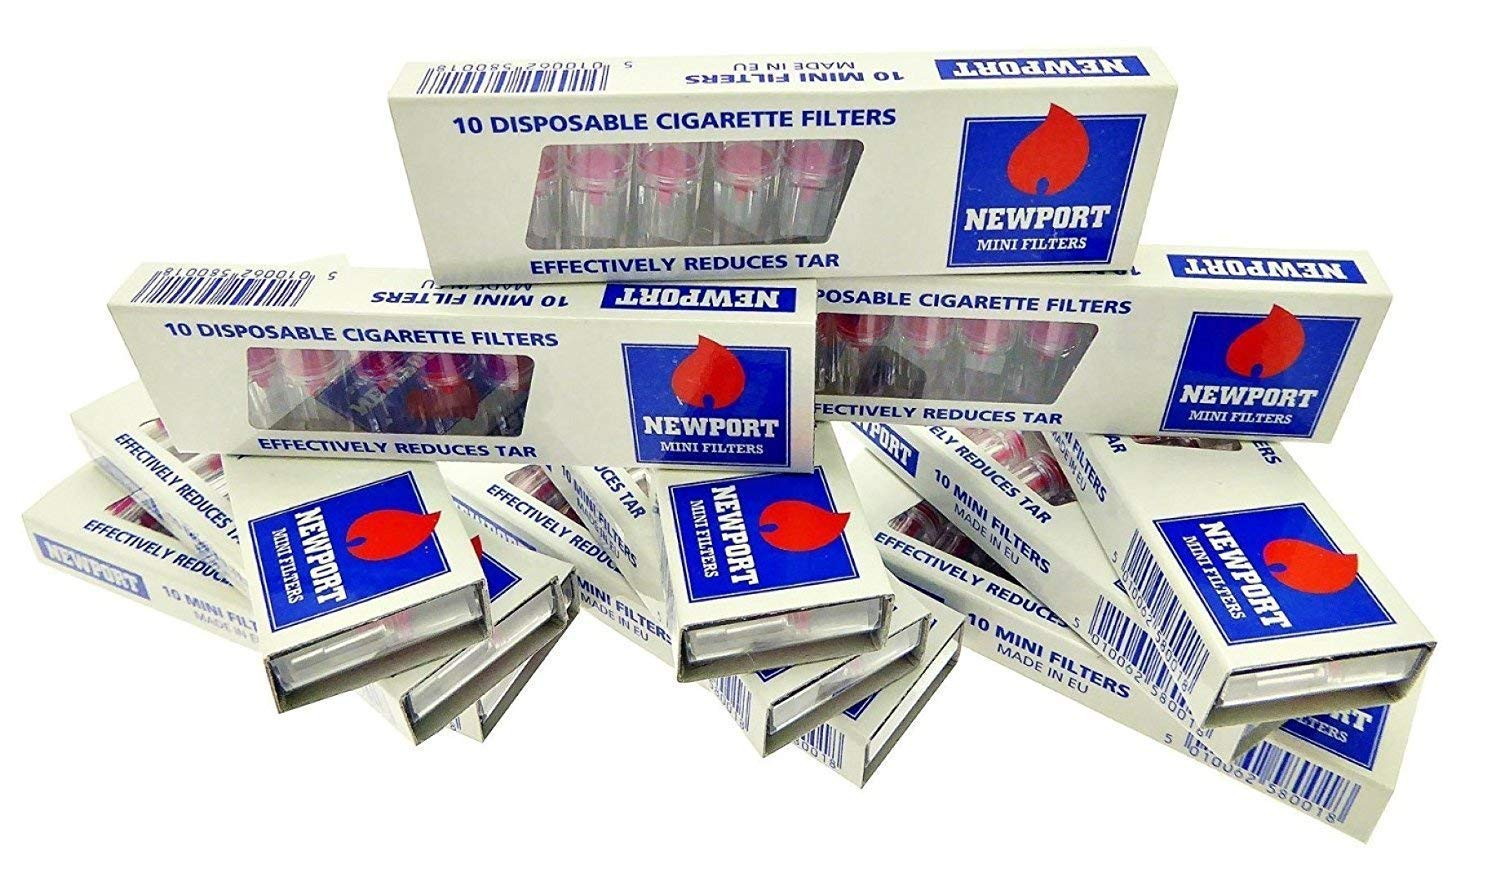 Montcherry Brand 2 Tips And Newport Disposable Cigarette Mini Filters 1 X10 Tar Catcher 12 Packs120 Bo Deal Sold By Trendz Amazoncouk: Dress Smoking Wedding Cigarette120 At Websimilar.org